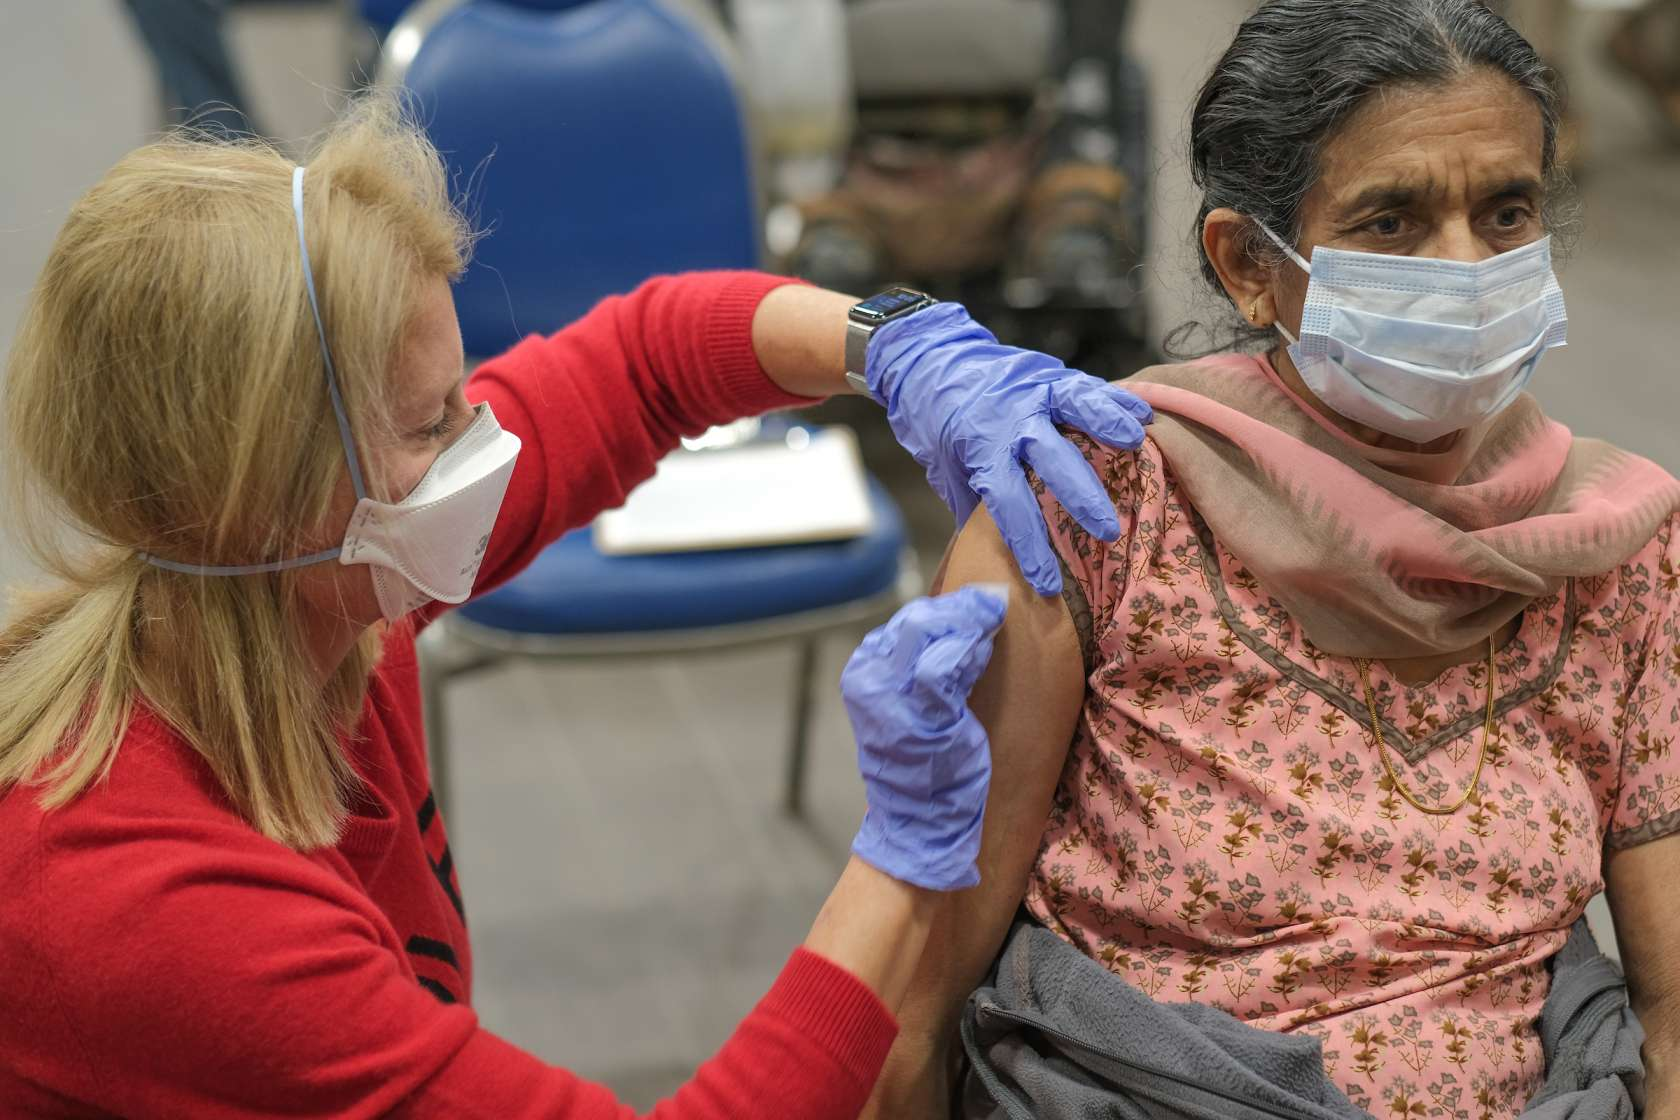 A light-skinned UF Health careworker, wearing red scrubs, gives a vaccination to an older woman with medium complexion.